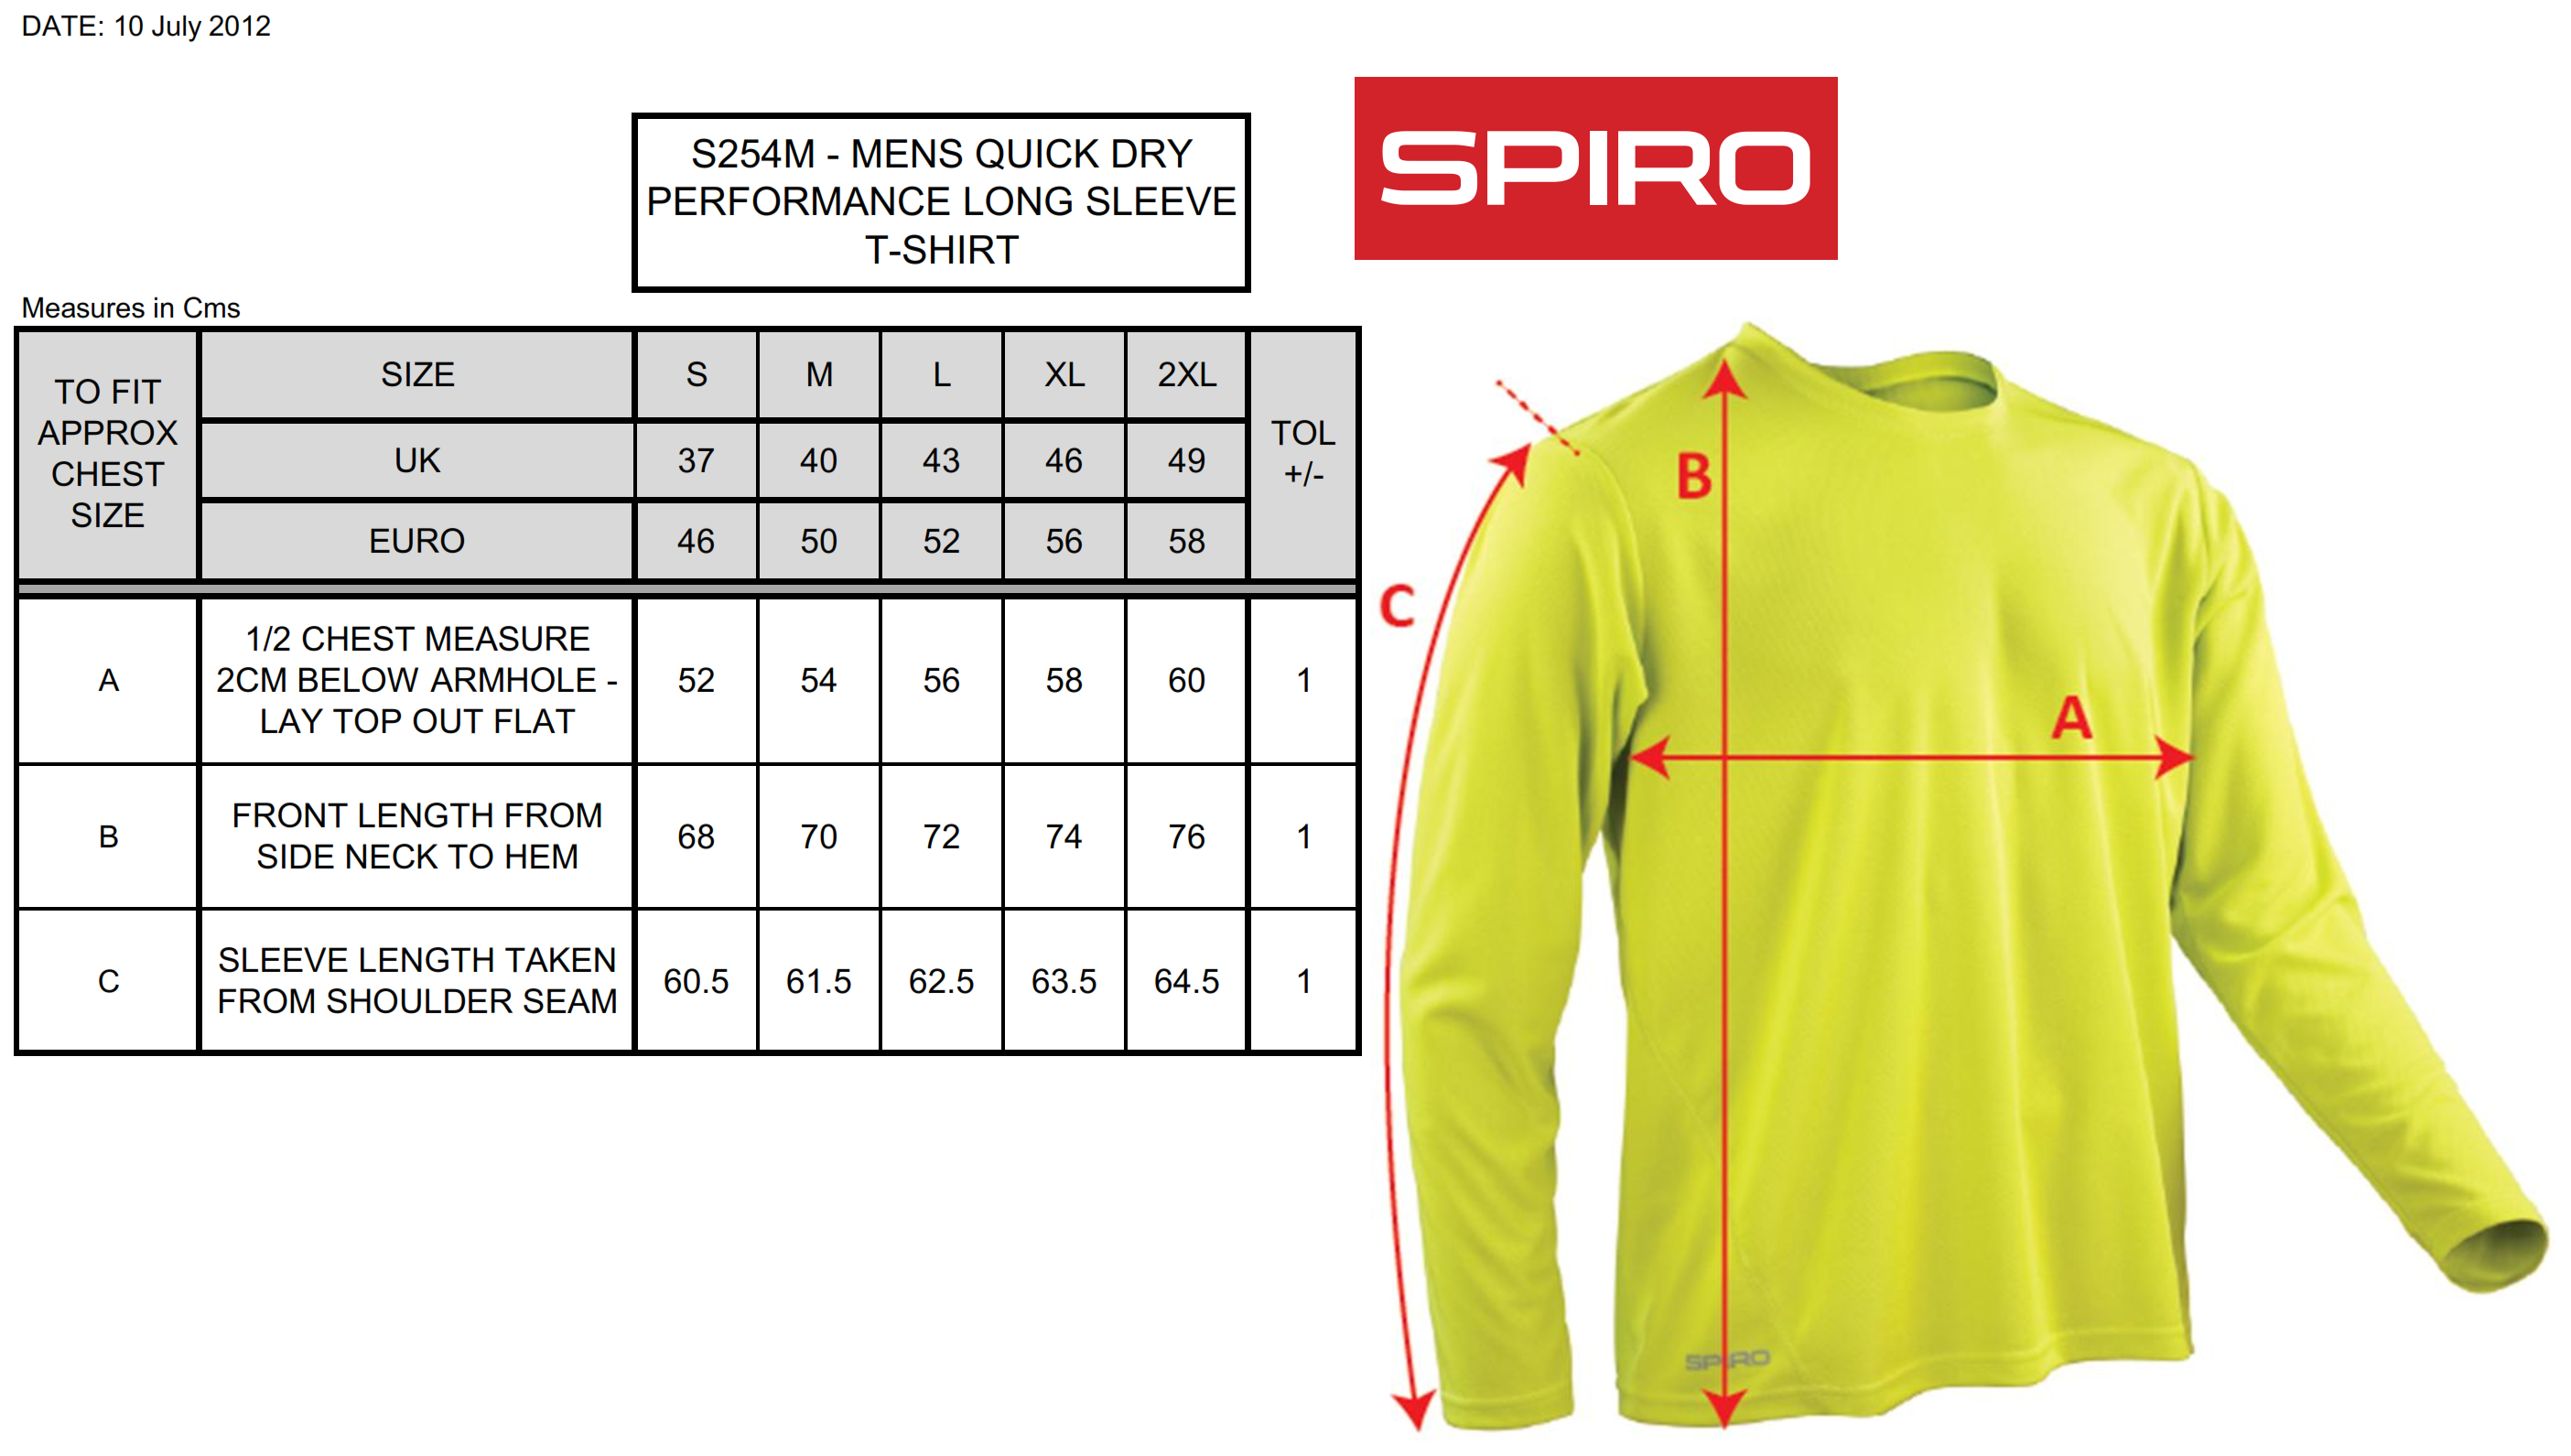 Result: Performance T-Shirt LS S254M